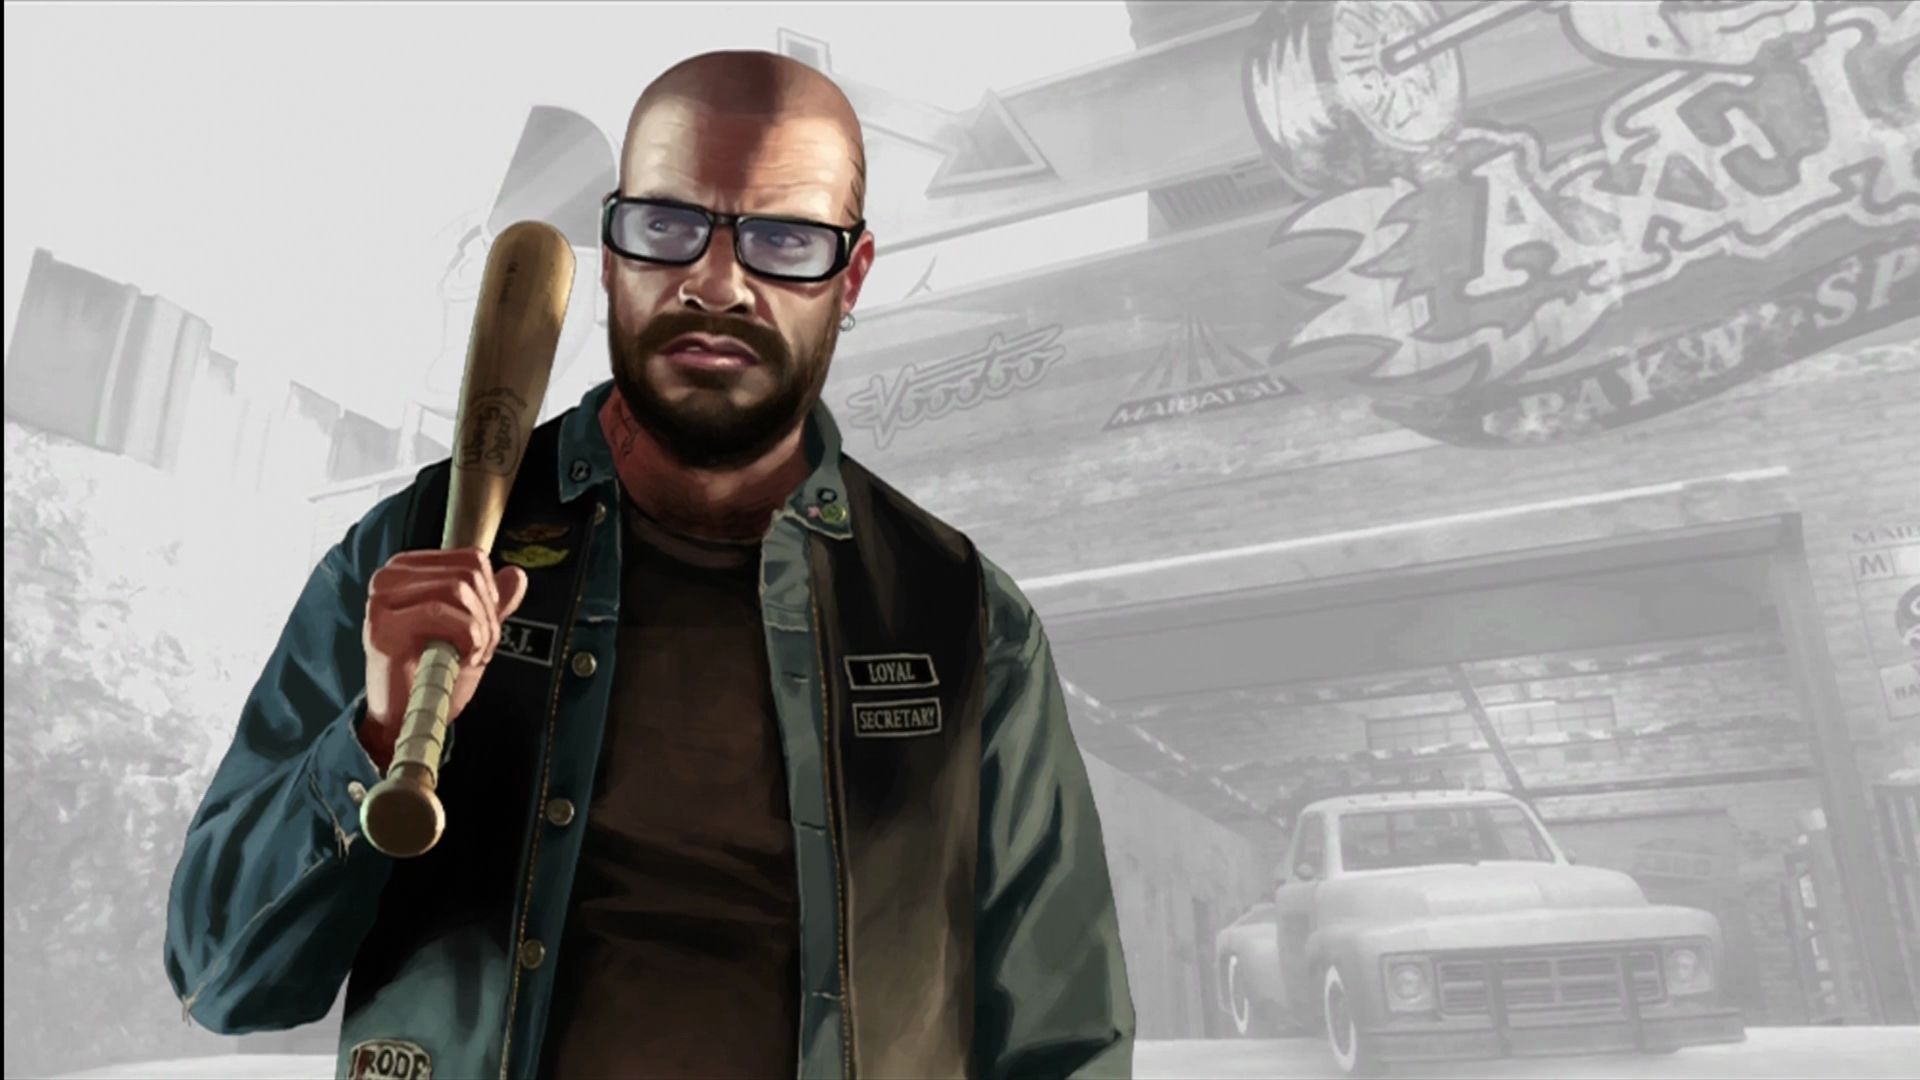 Grand Theft Auto IV: The Lost and Damned Xbox 360 New character portraits for the loading screens